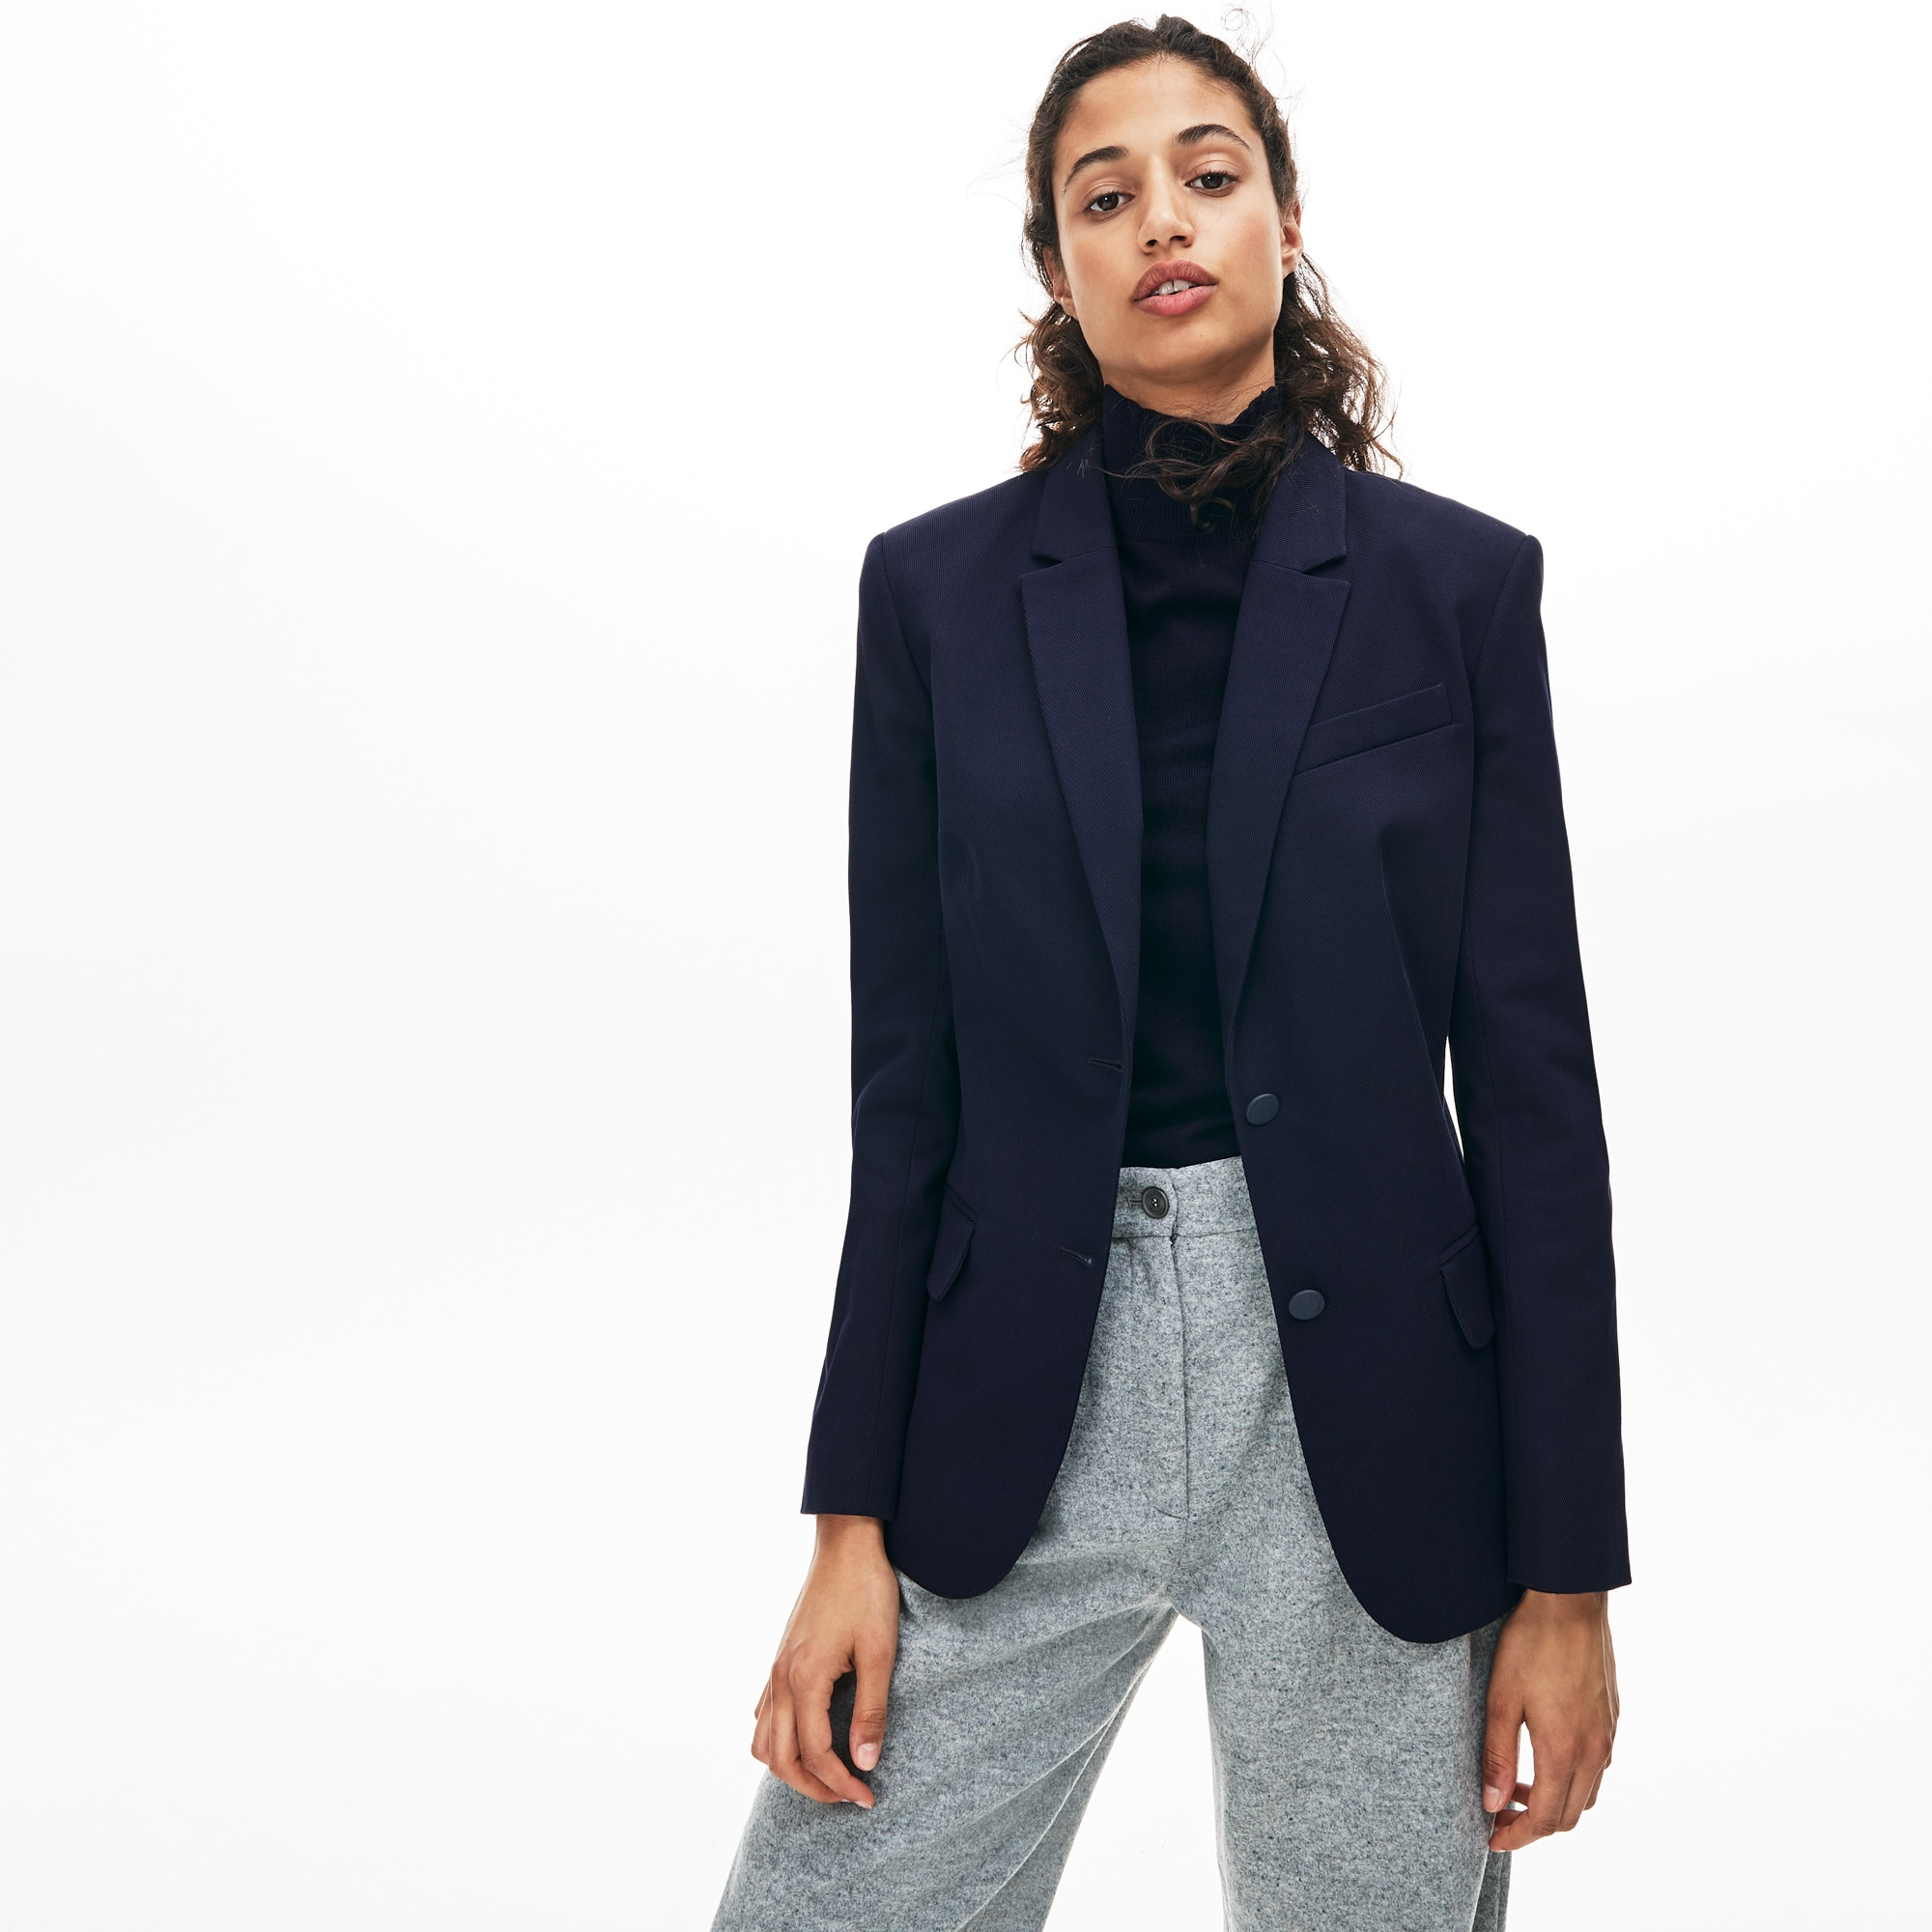 Lacoste Jackets Women's Fitted Stretch Cotton Blazer